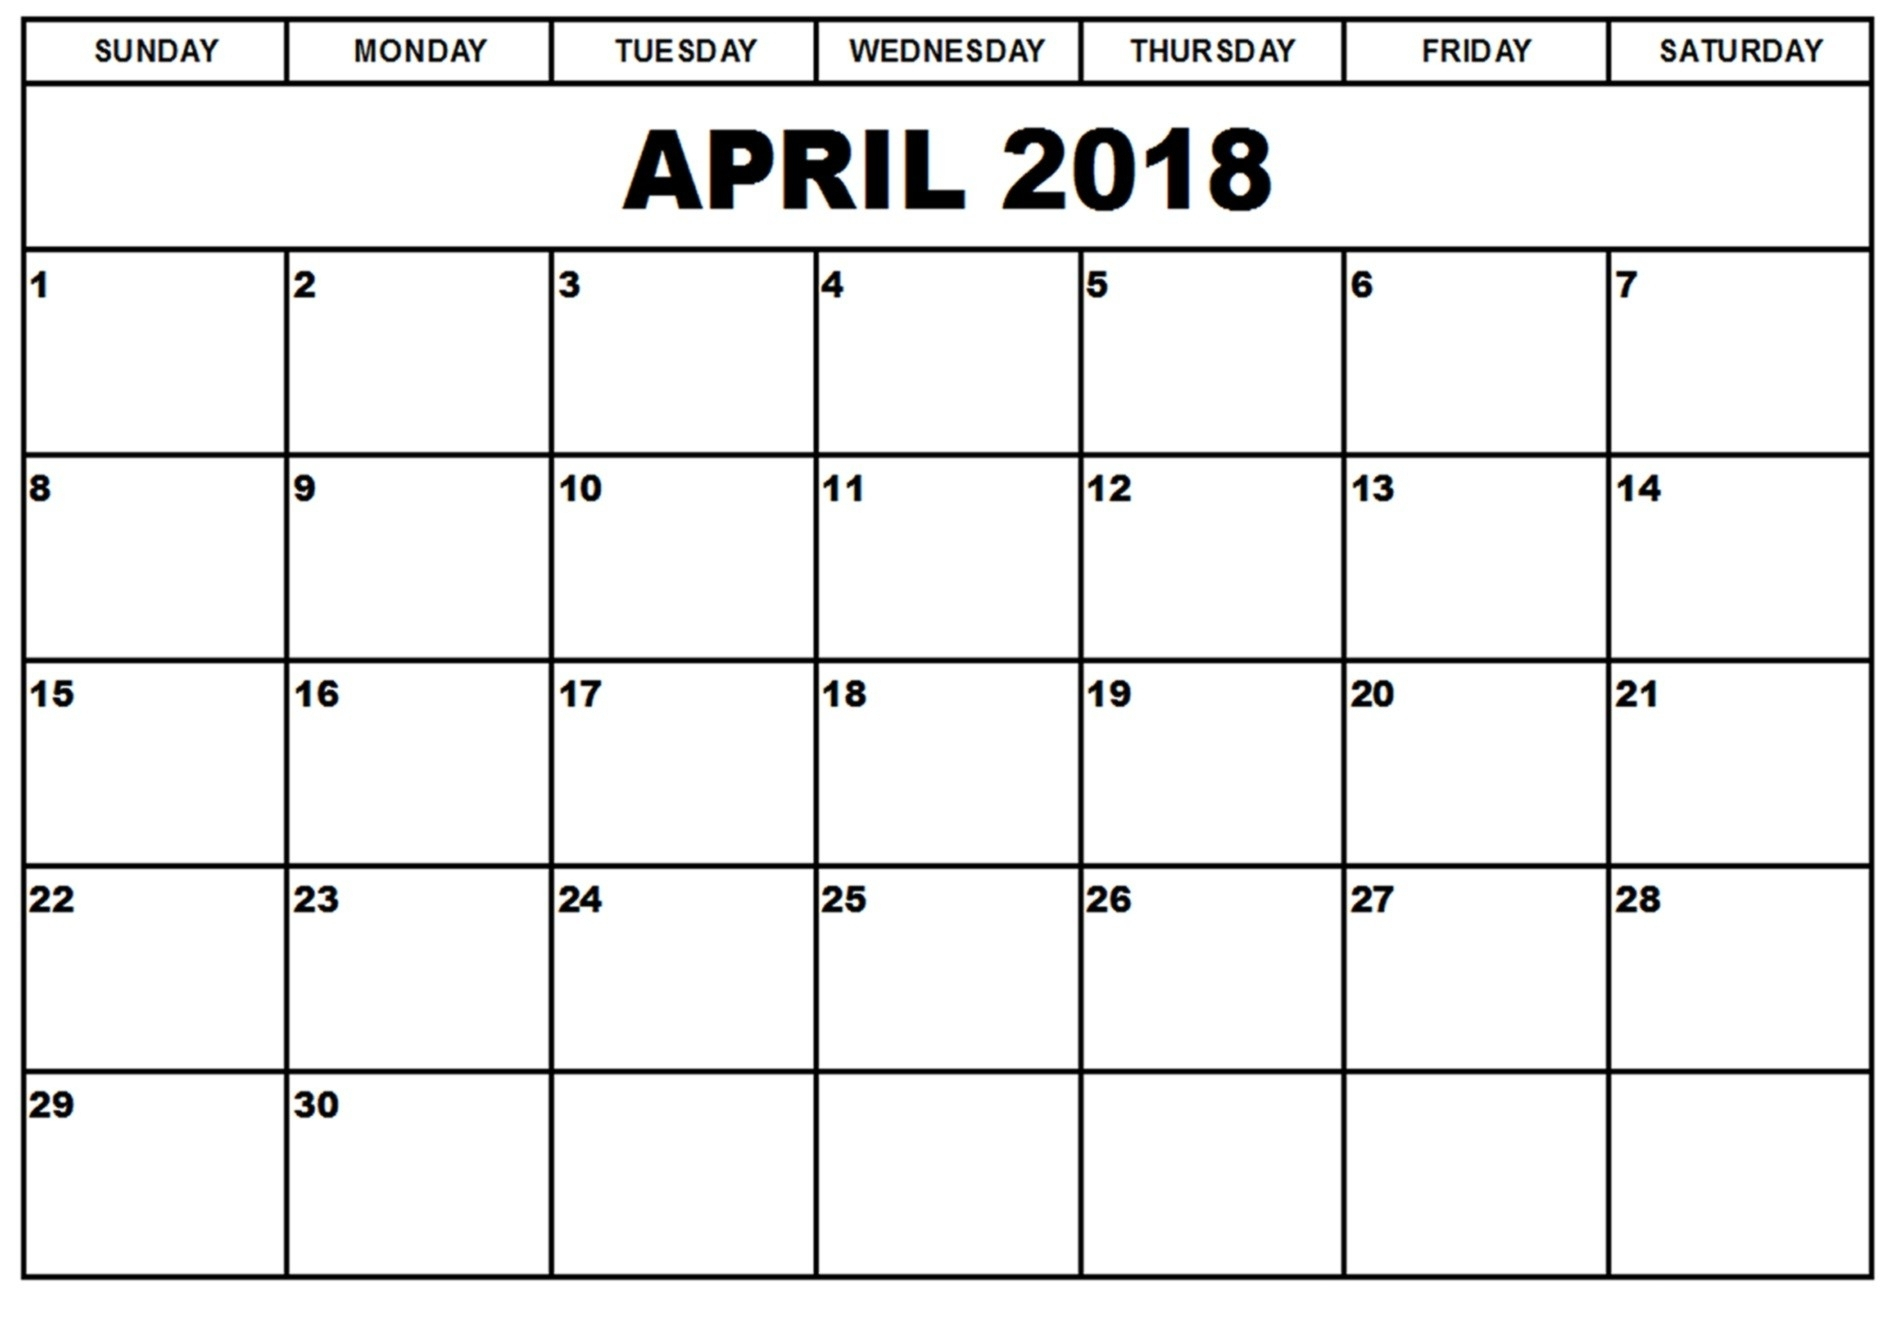 Free Calendar Templates For The Blind  Calendar Inspiration throughout Free Printable Large Print Calendars For The Visually Impaired